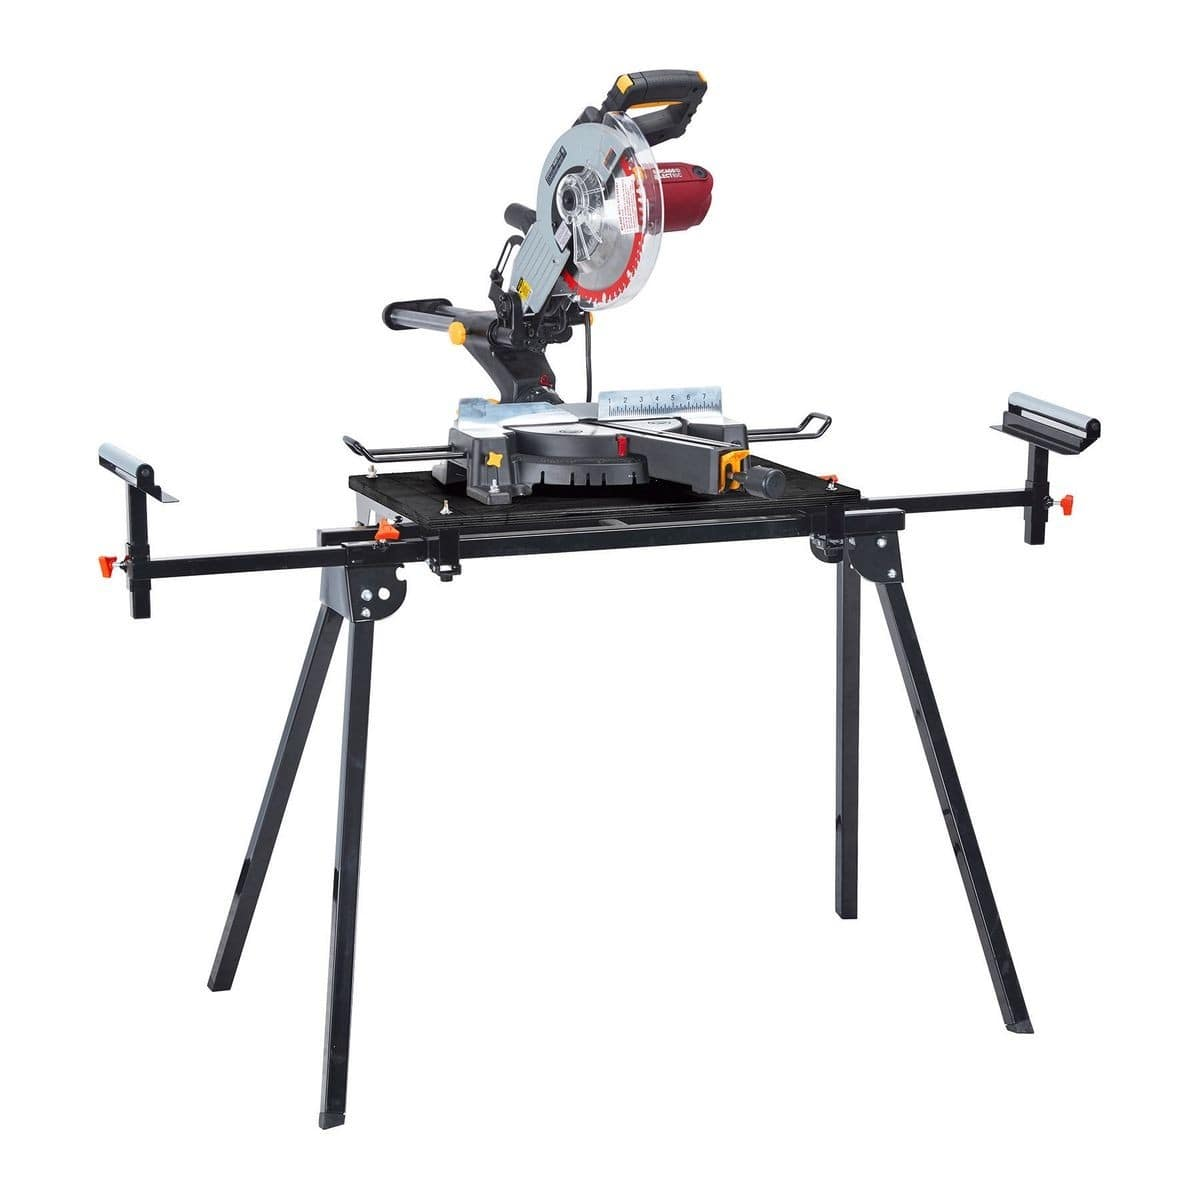 WARRIOR Folding Miter Saw Stand - $50 after coupon $49.99